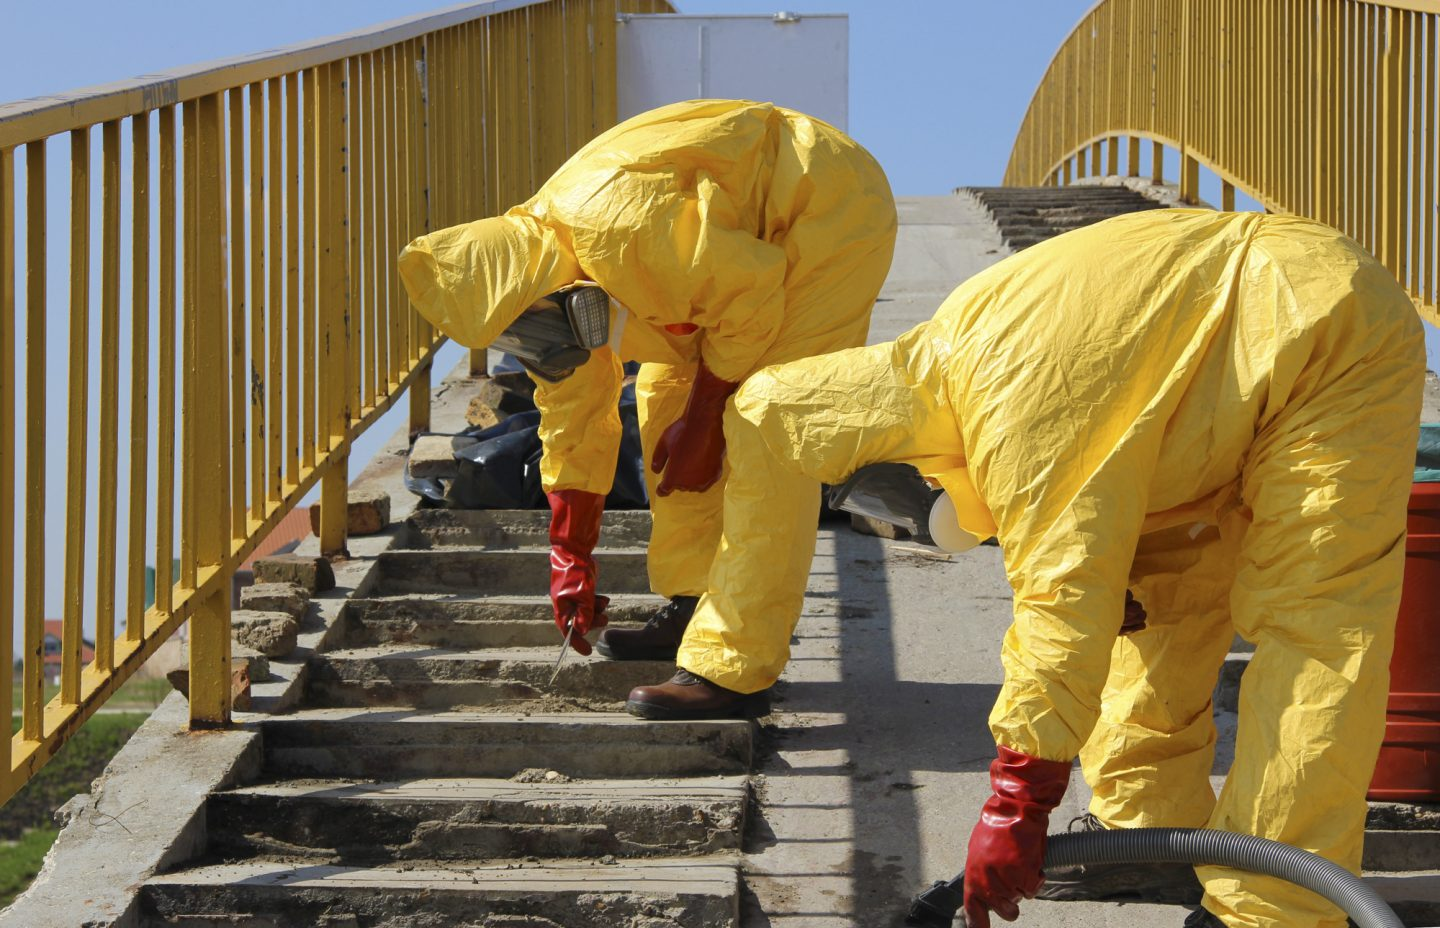 Hazardous Material Removal: Time to Call the Experts